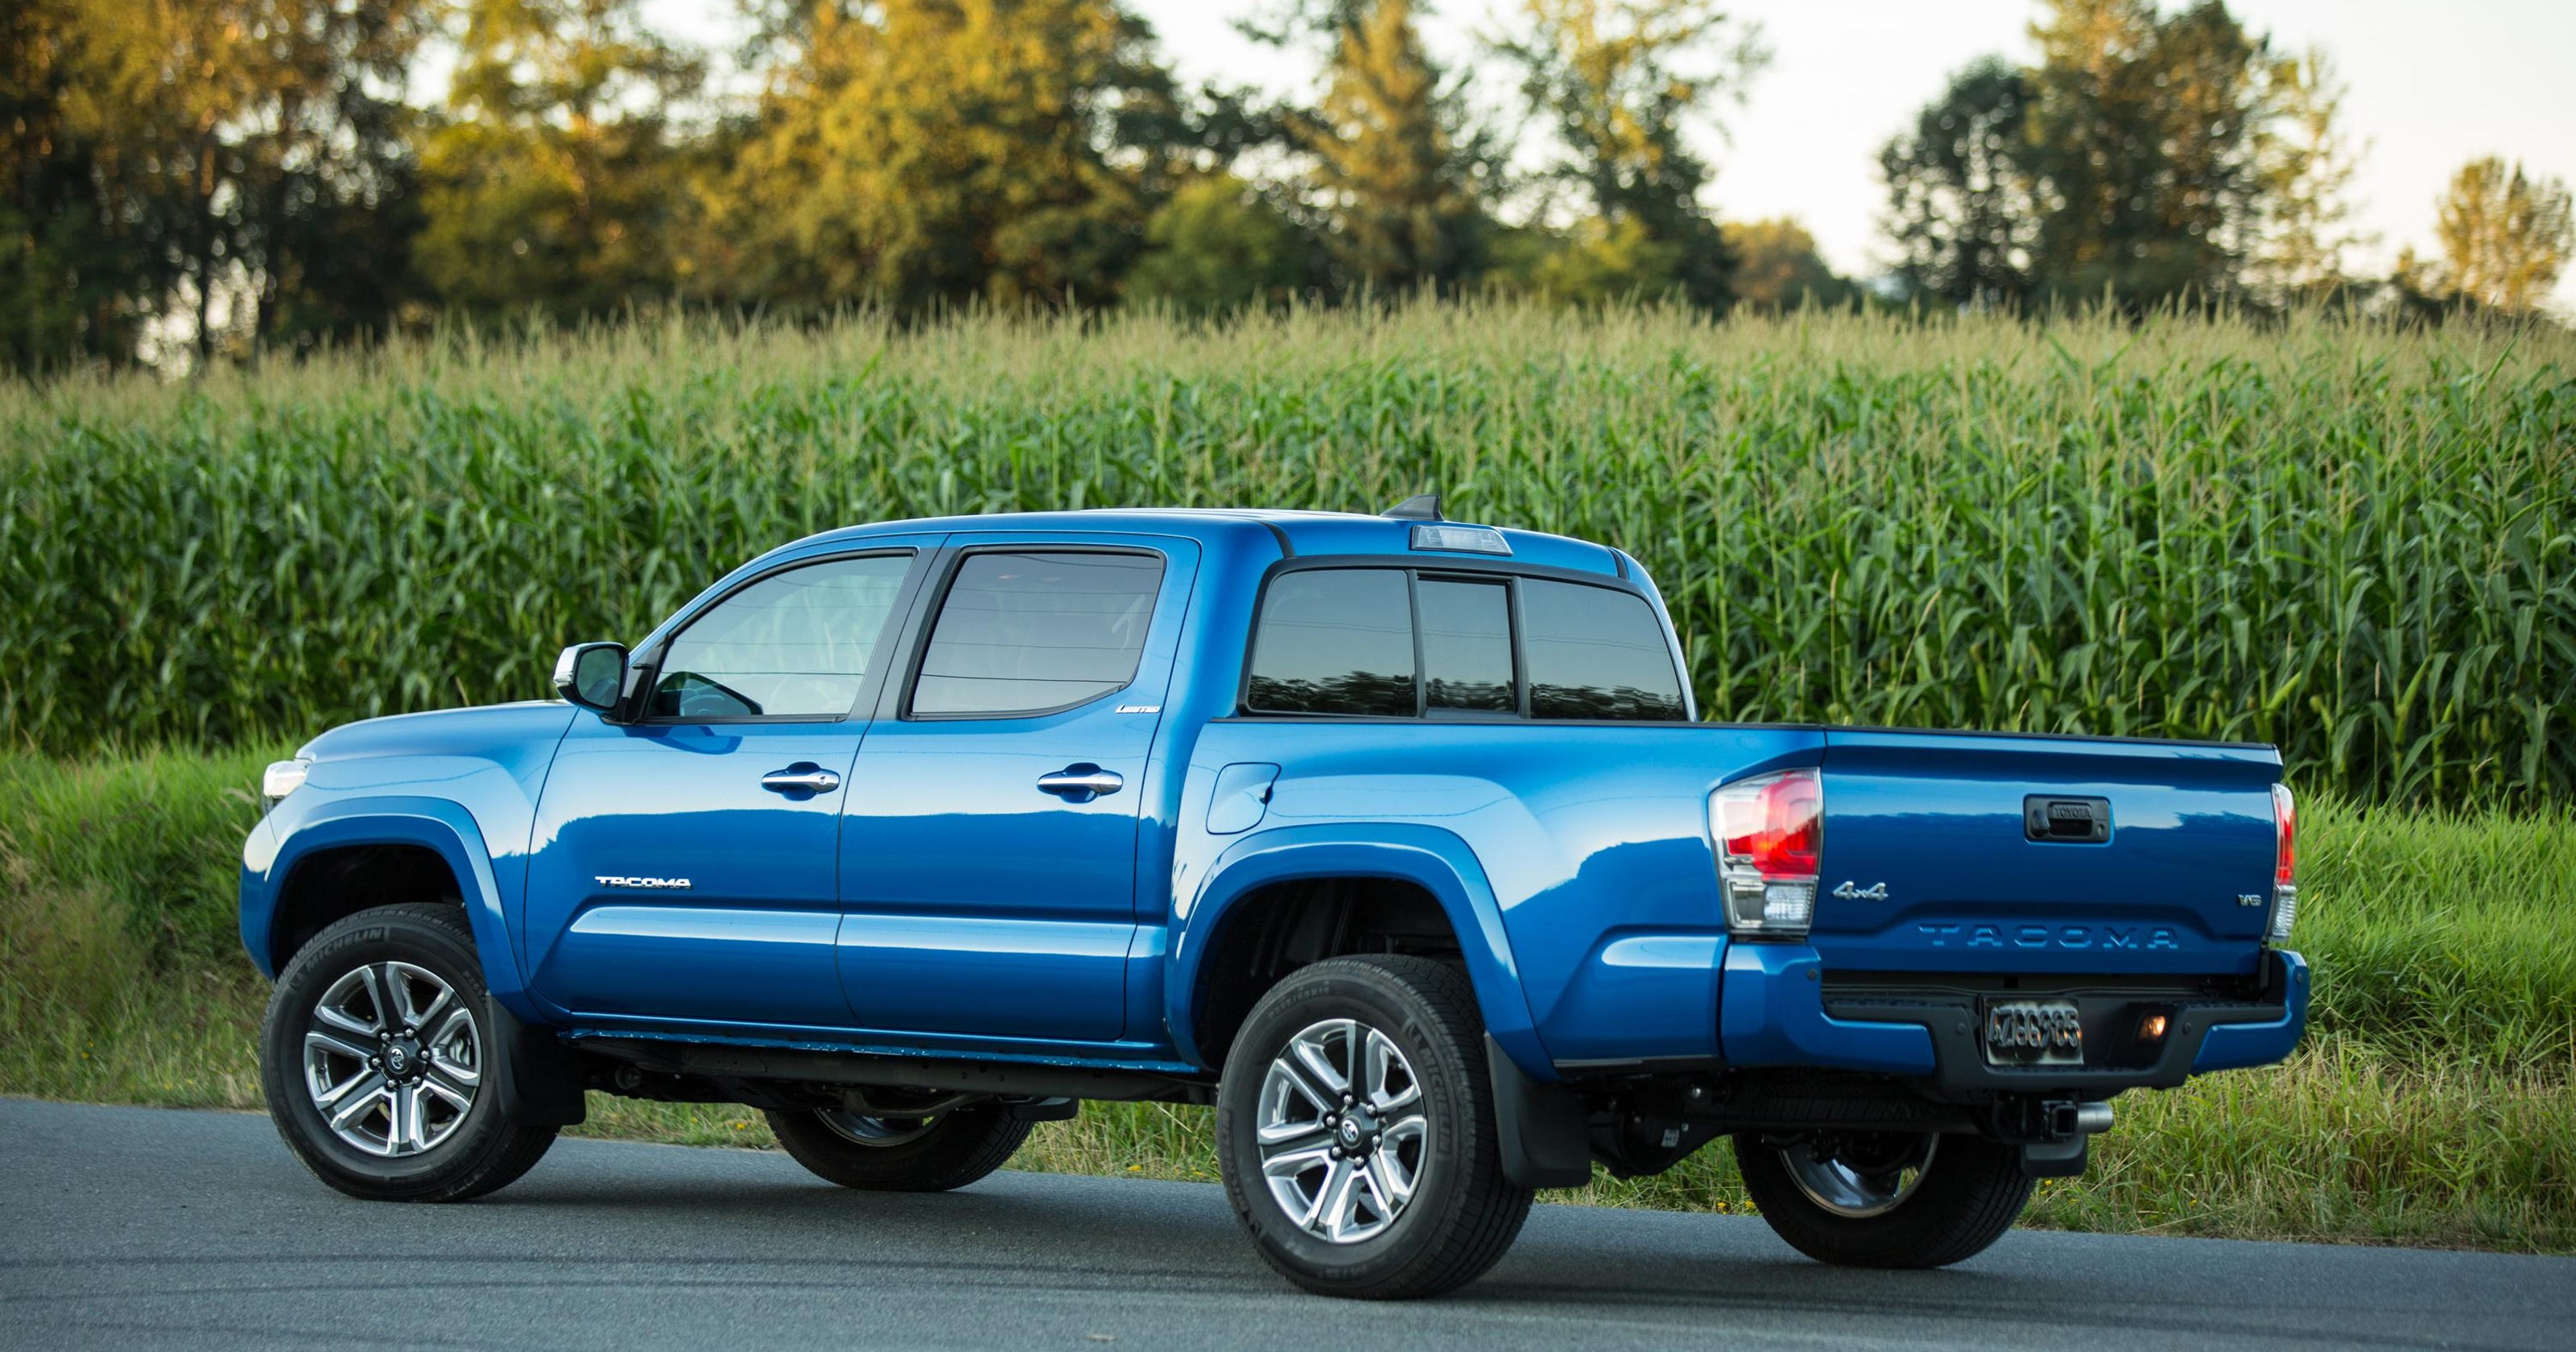 Toyota Tacoma Towing Capacity >> Toyota Tacoma Adds Power And Towing Capacity For 2016